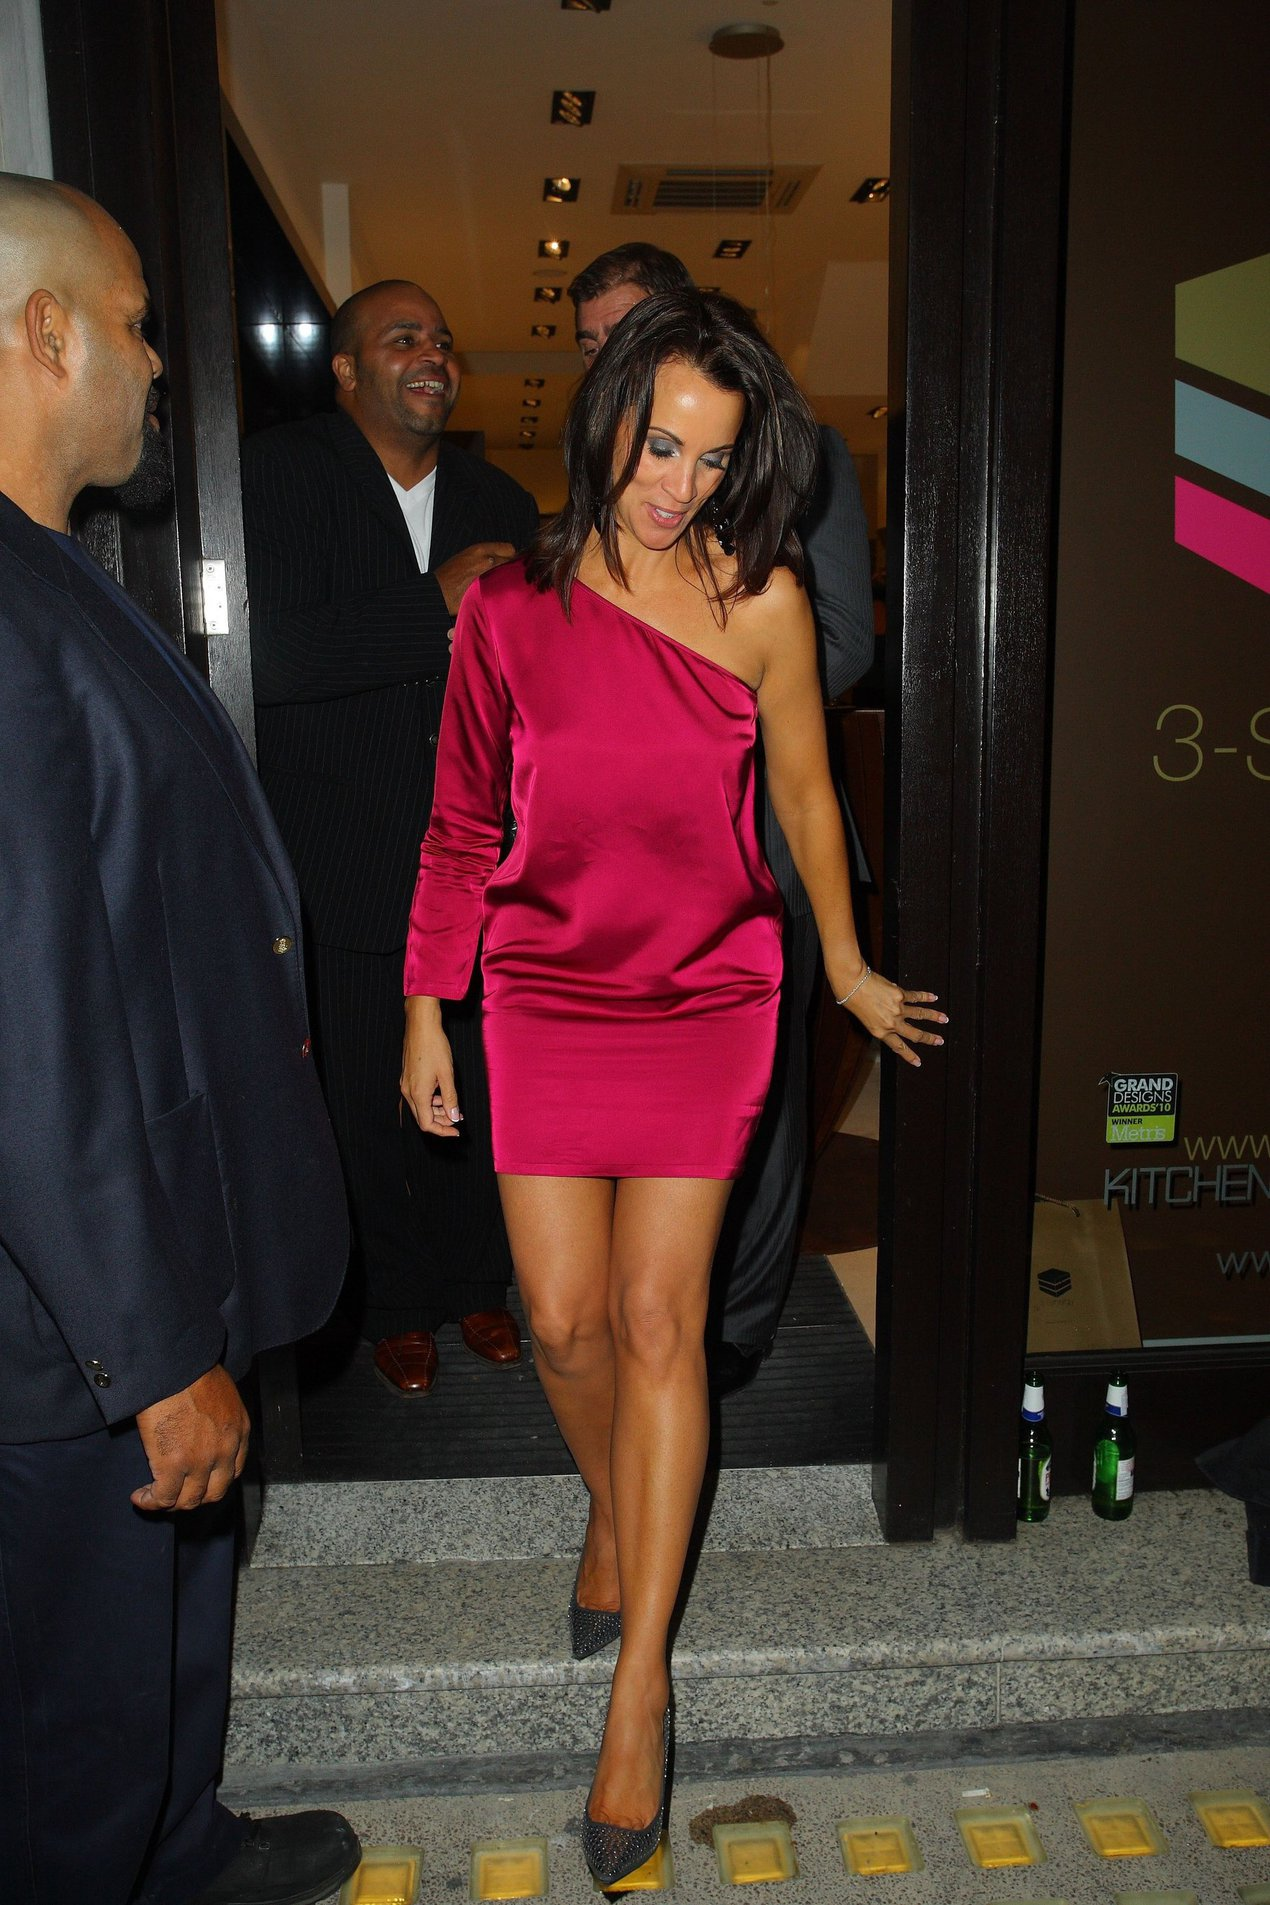 Andrea McLean 3 Synergy Launch Party in London on September 30, 2010